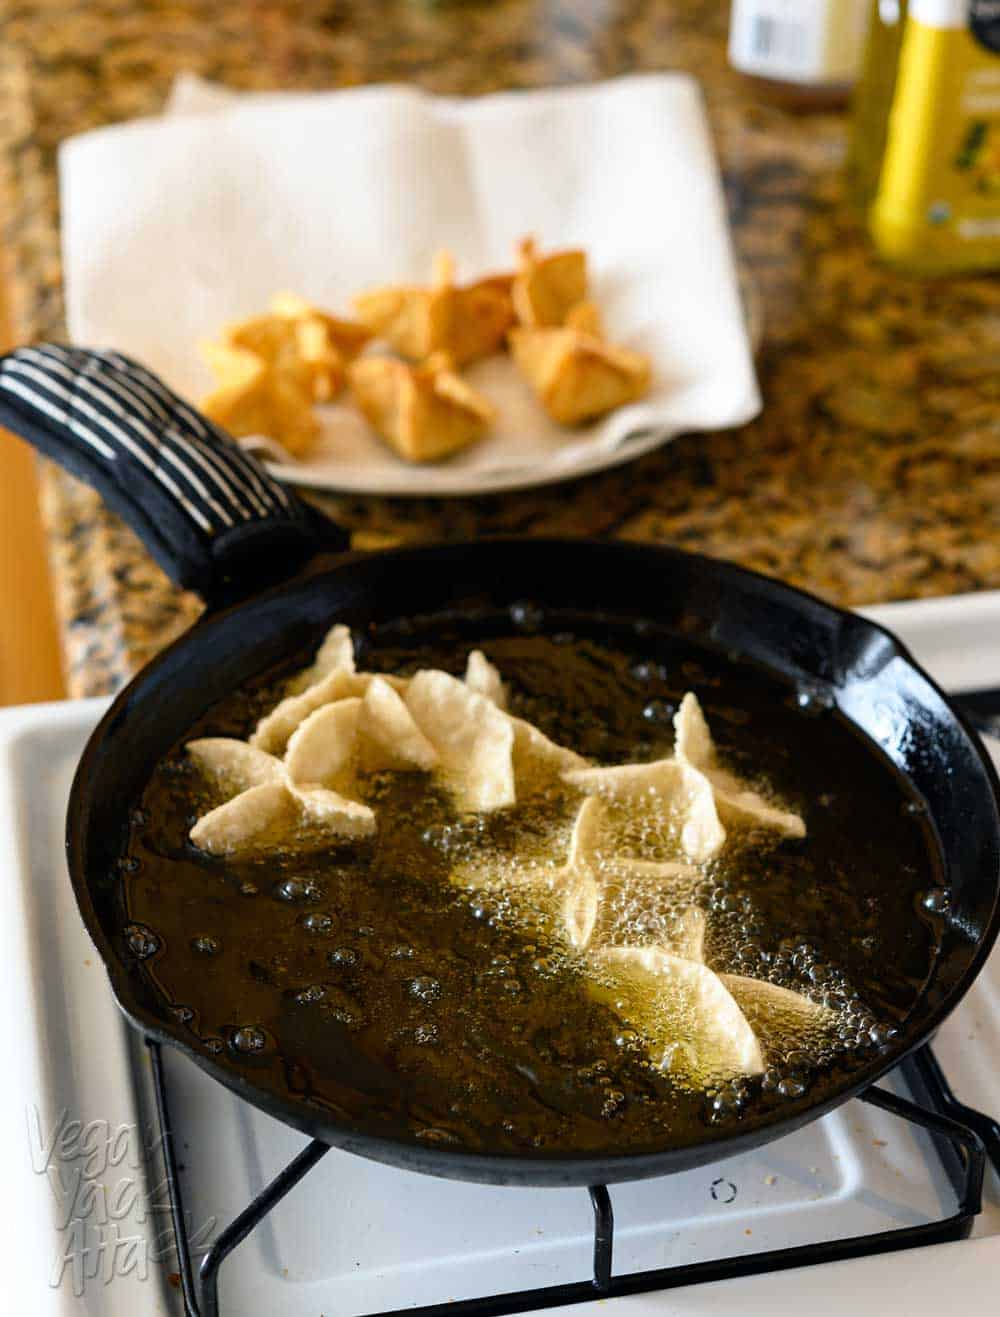 Frying vegan Crab Rangoon in a large, cast iron skillet, on a the stove, with cooked pieces on a plate in the background.